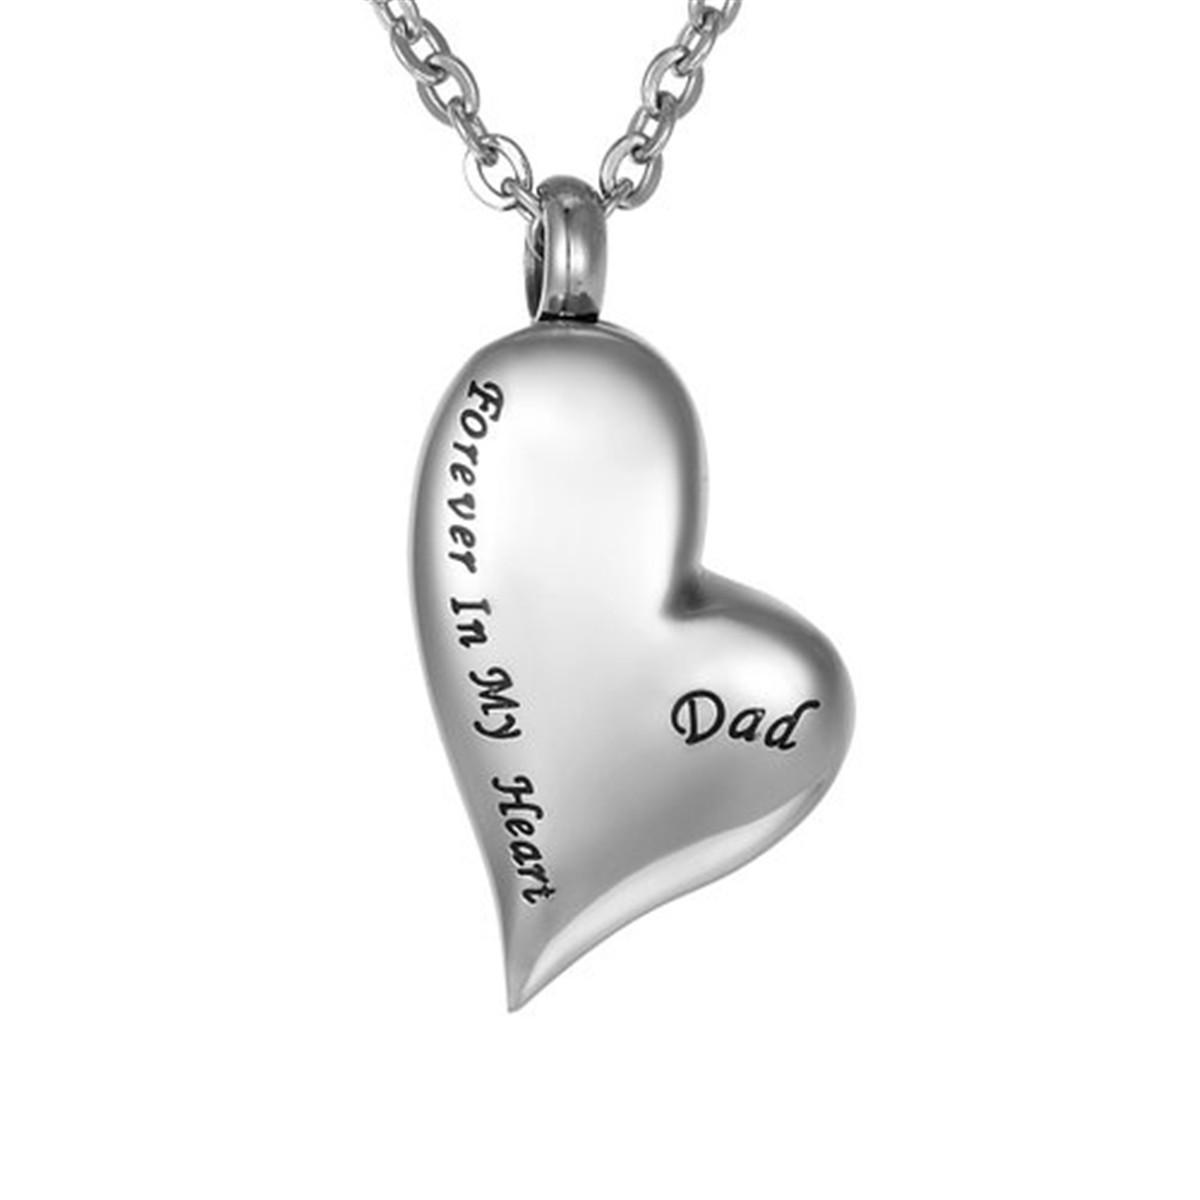 Wholesale Lily Urn Necklaces Cremation Jewelry Irregular Heart Dad Forever In My Heart Memorial Pendant Stainless Steel For Ashes With Gift Bag Lariat Necklace Personalized Necklaces From Lily Electronics 8 97 Dhgate Com